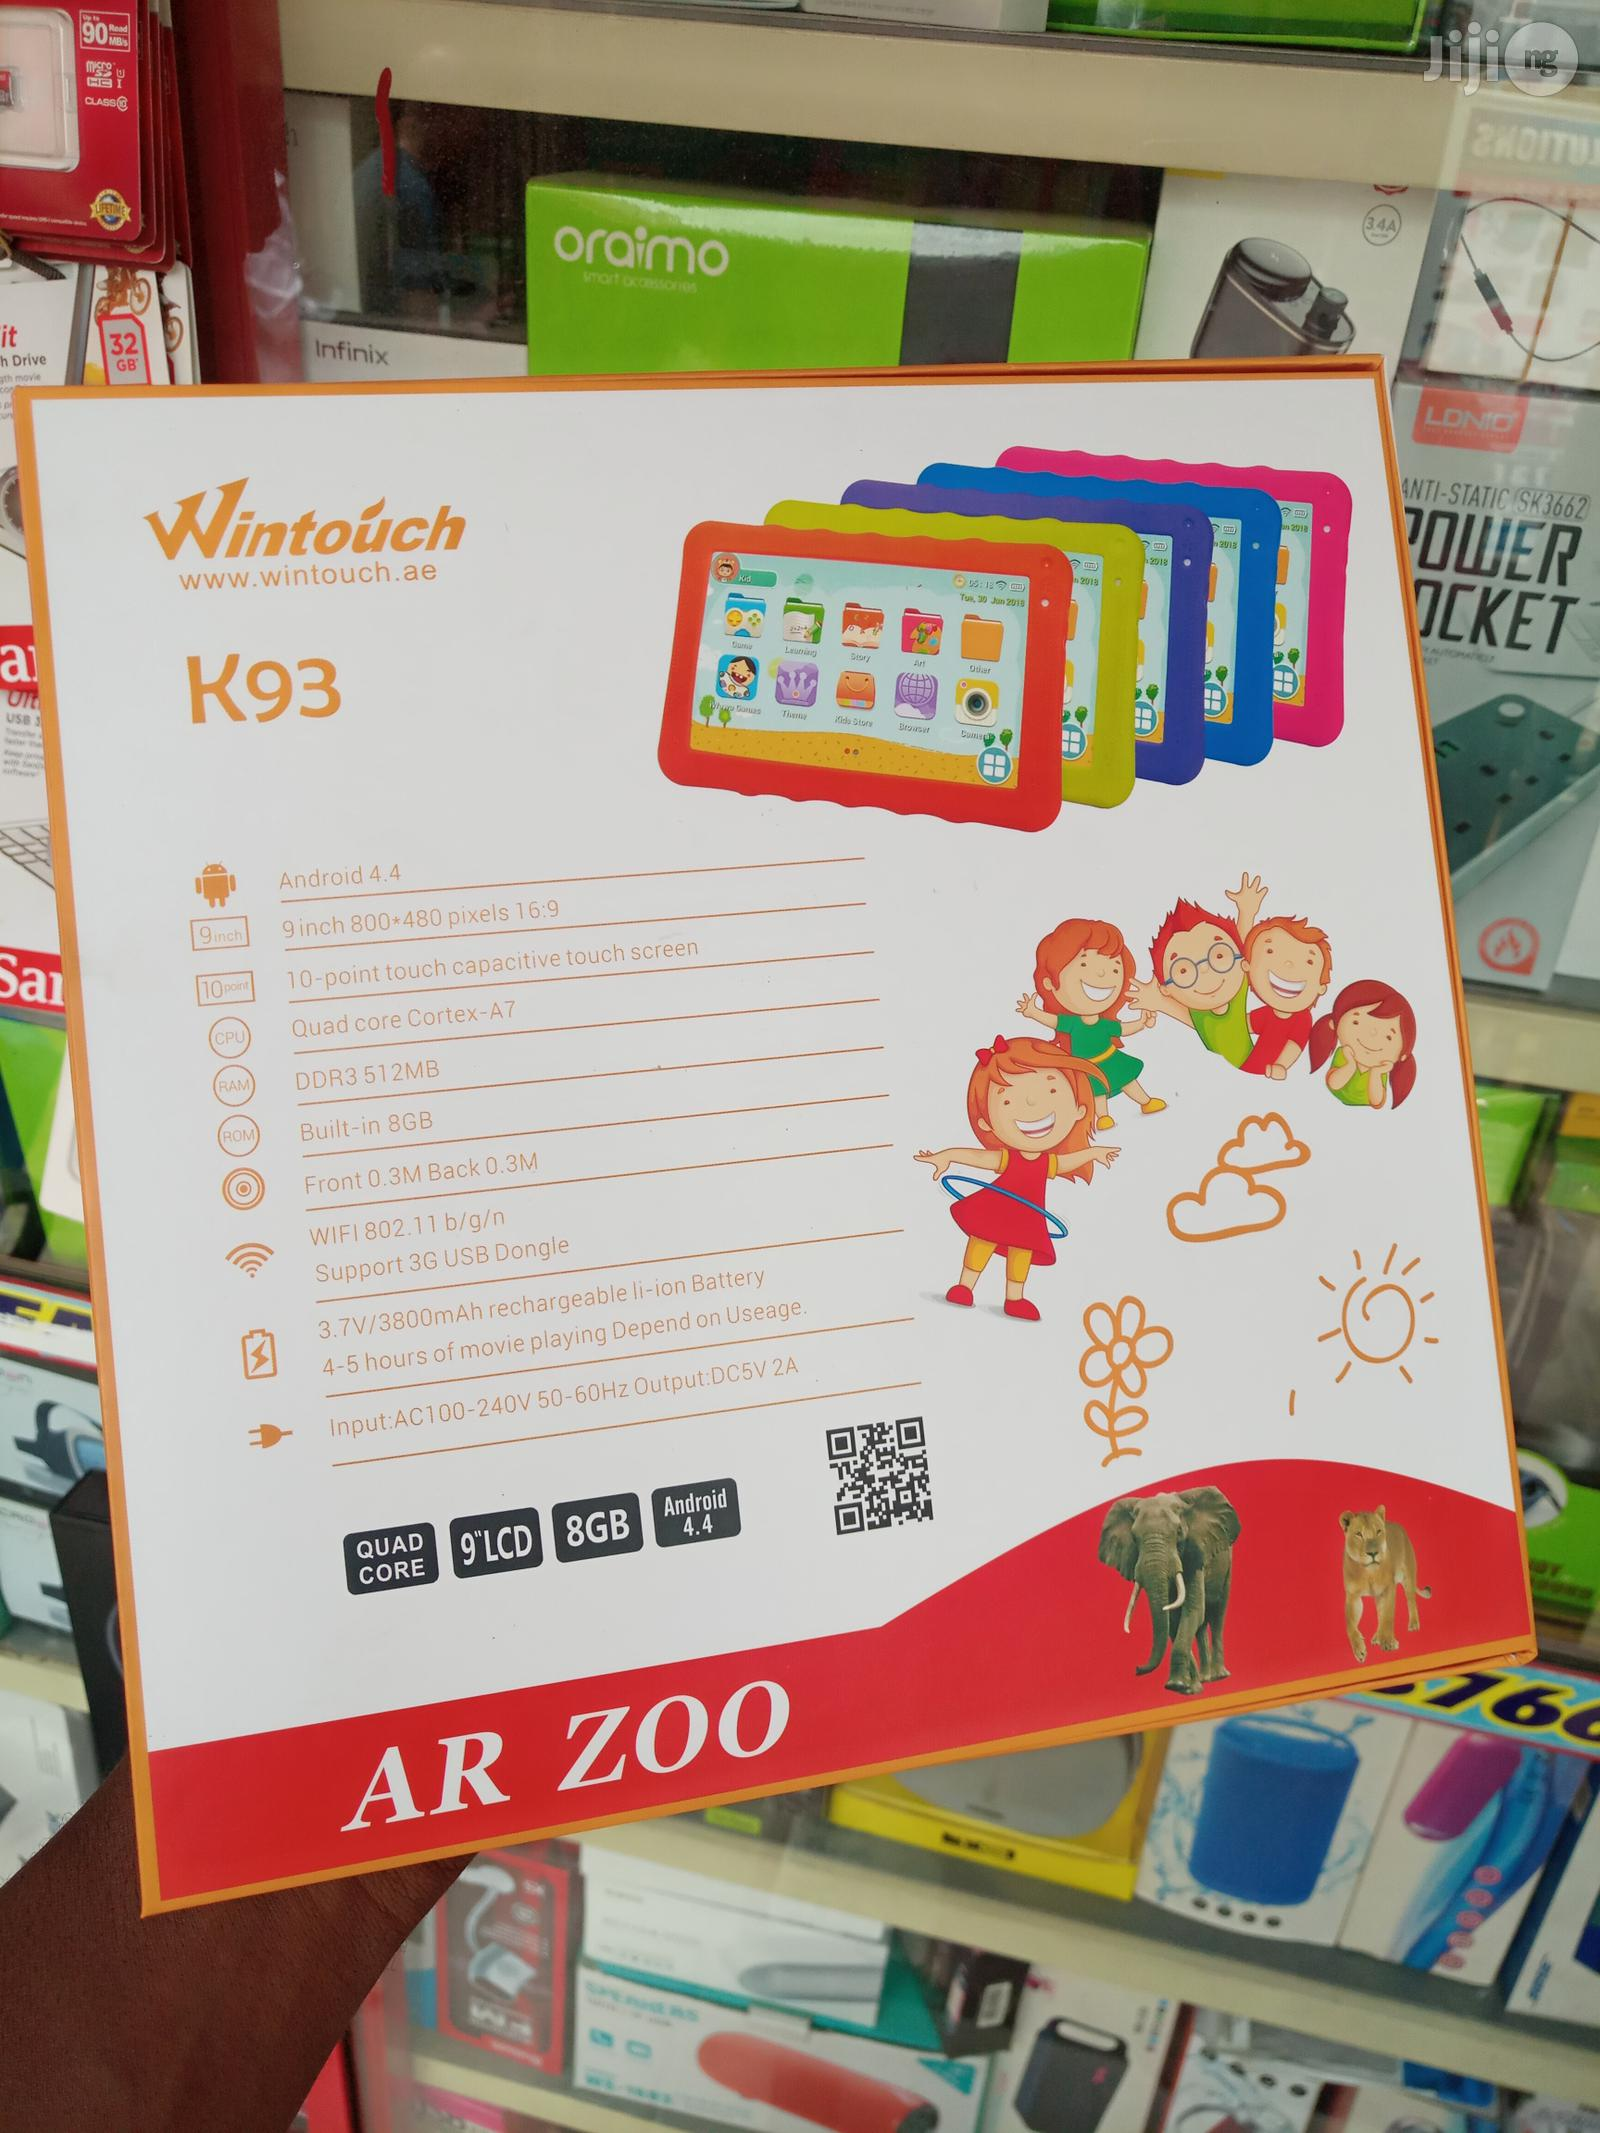 Children Pad Wintouch K93 9 Inchest 3G 8 Gb | Toys for sale in Ikeja, Lagos State, Nigeria